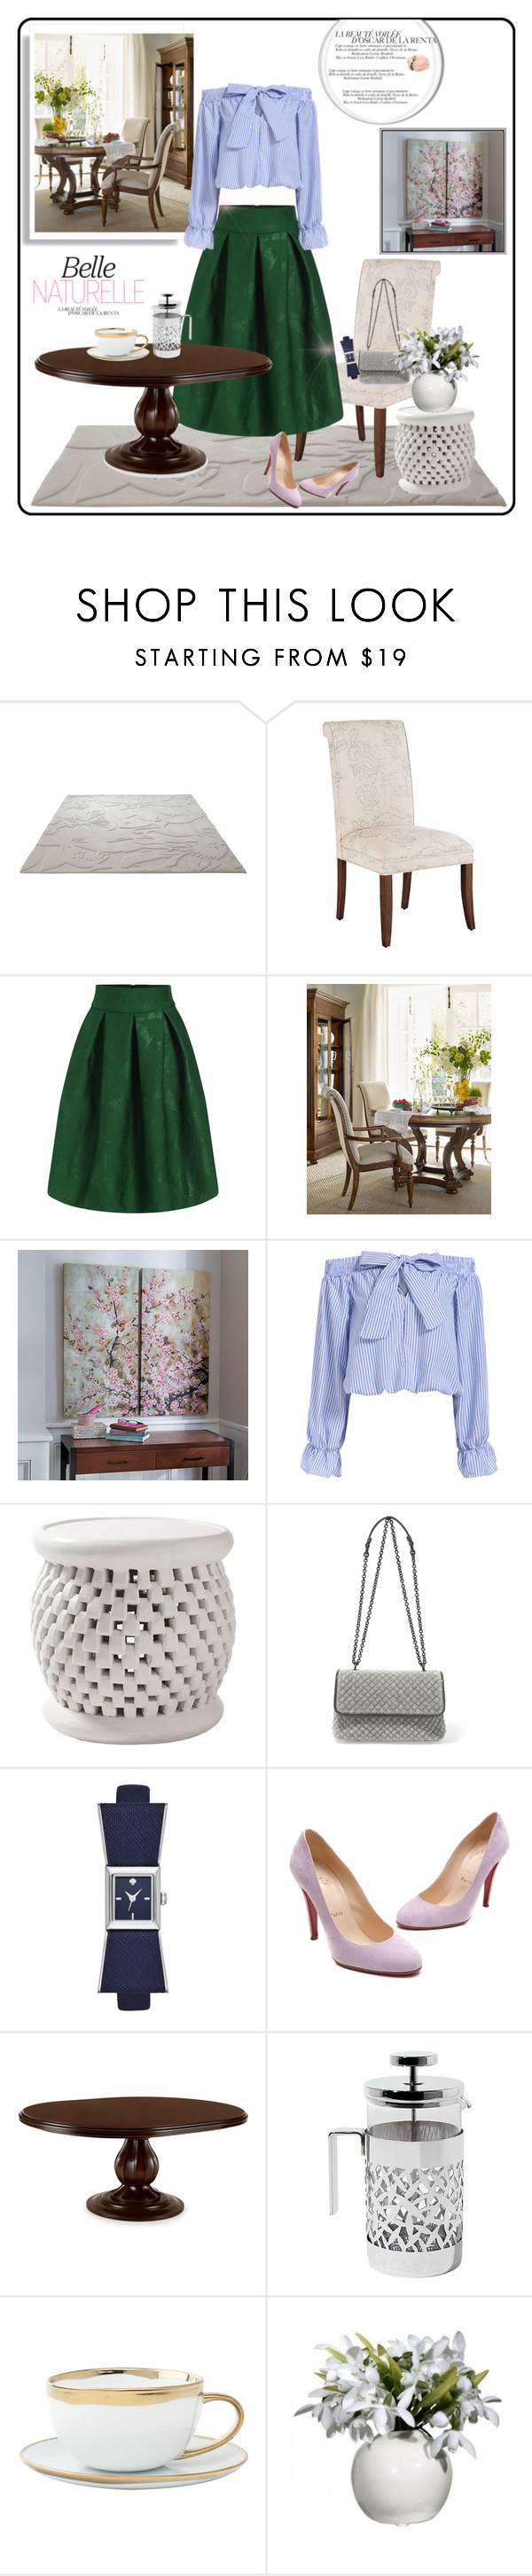 """Natural Chic"" by yukotange ❤ liked on Polyvore featuring ESPRIT, Pier 1 Imports, Hooker Furniture, Improvements, Serena & Lily, Bottega Veneta, Kate Spade, Christian Louboutin, Alessi and Canvas Home"